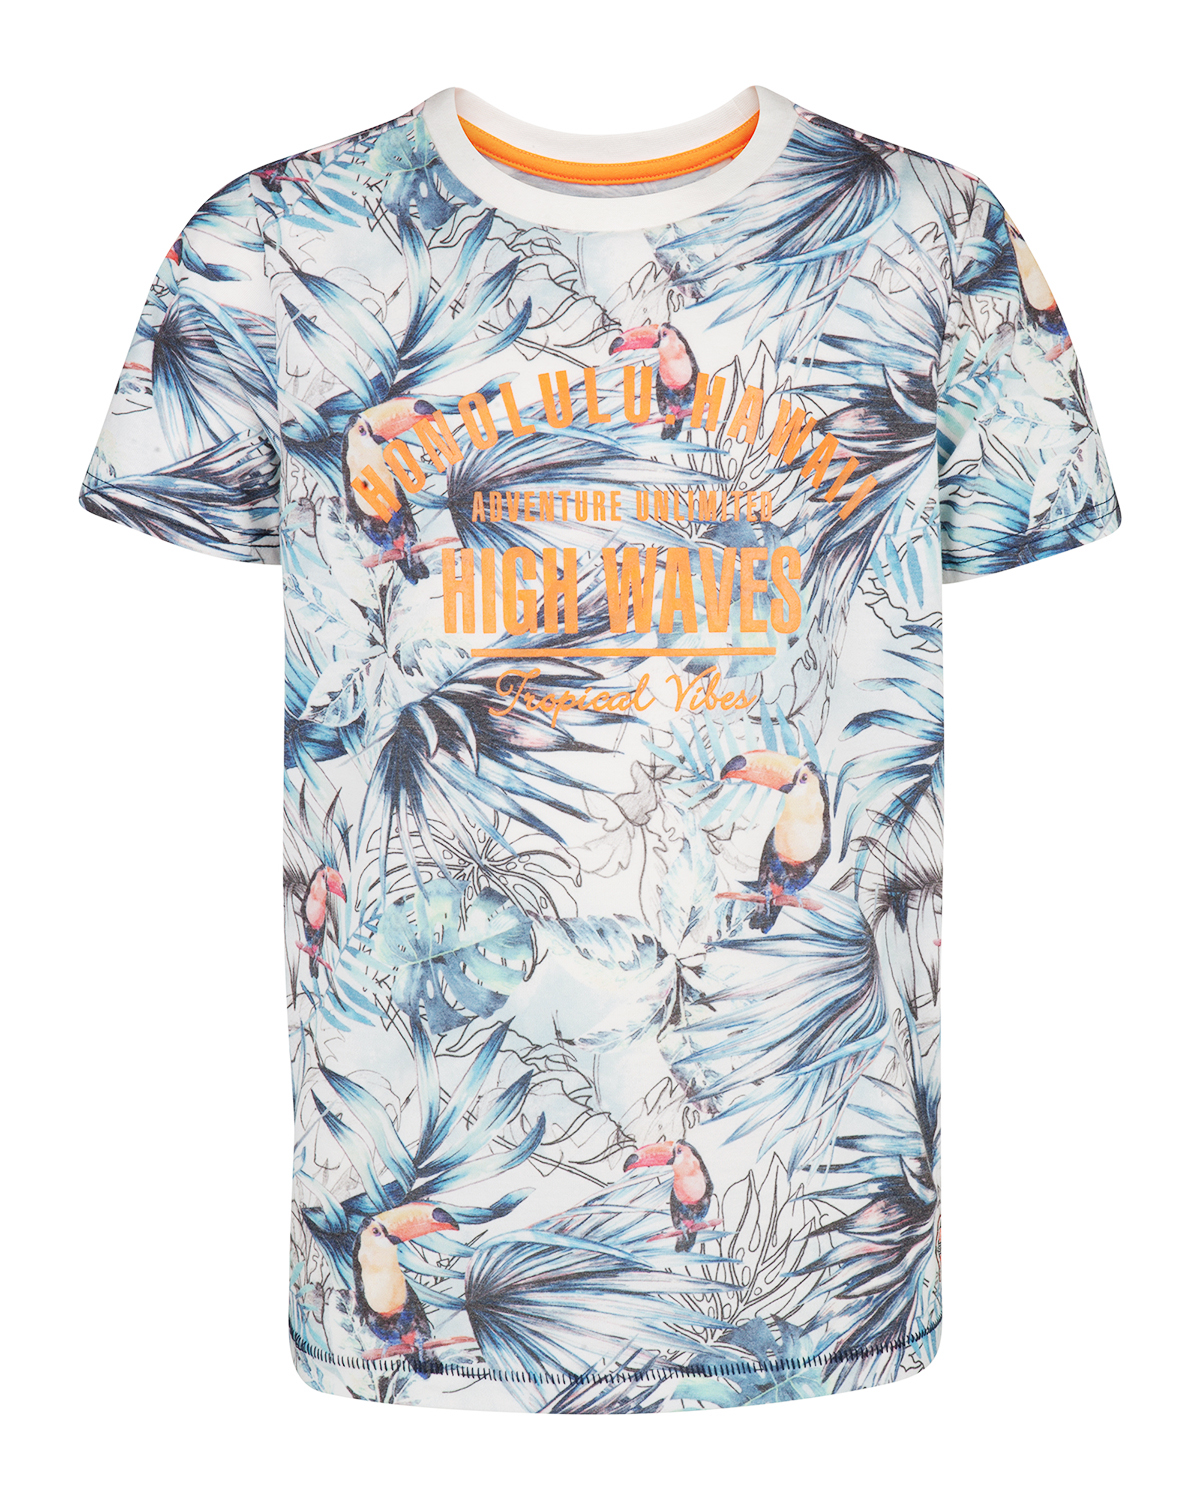 Jungen t shirt mit hawaii print 82842697 we fashion for T shirt printing delaware